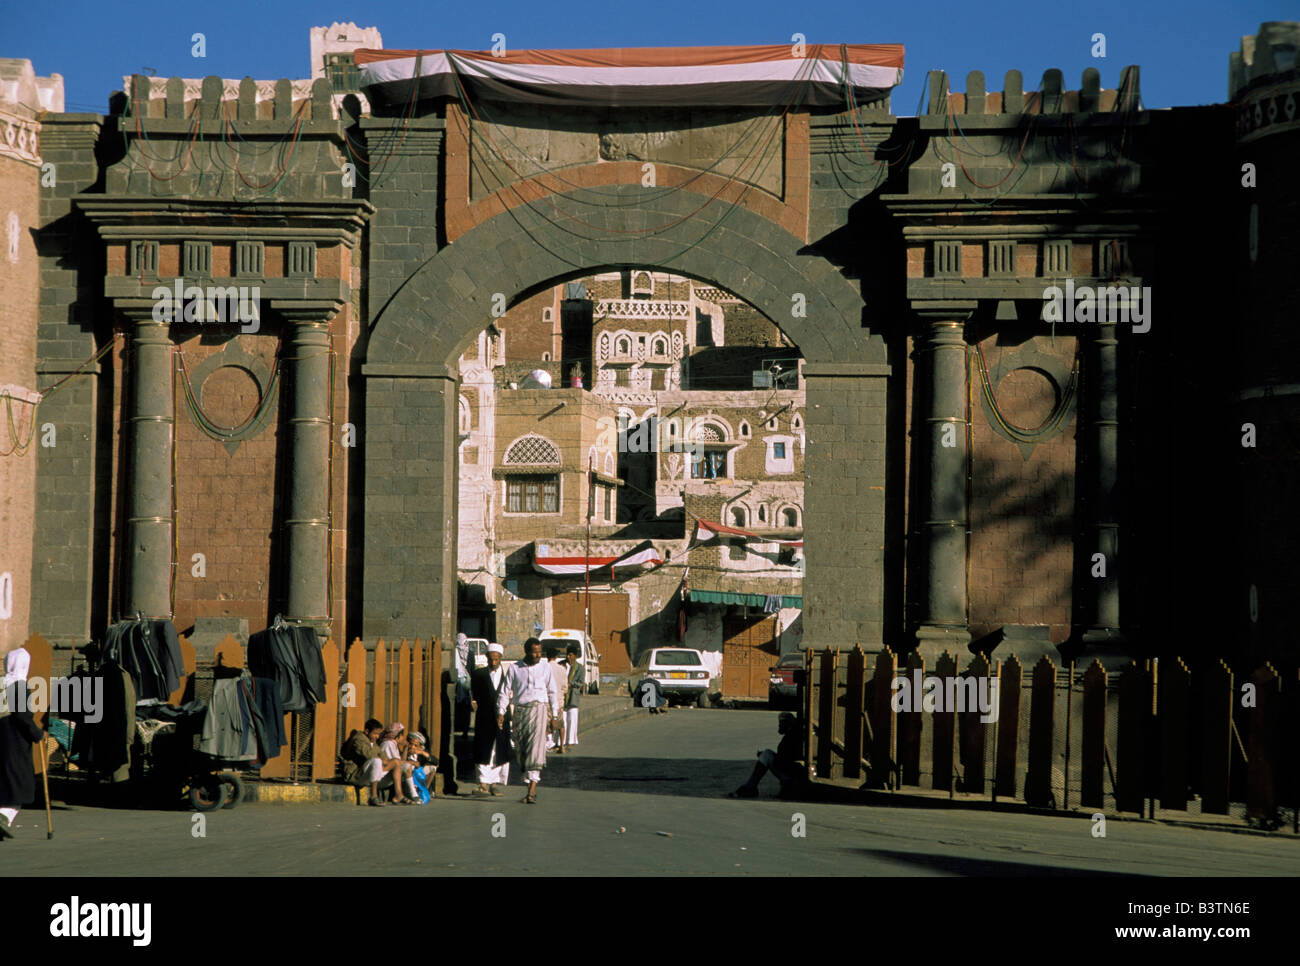 asia yemen sana 39 a bab al yemen entrance gate to the old city stock photo royalty free image. Black Bedroom Furniture Sets. Home Design Ideas